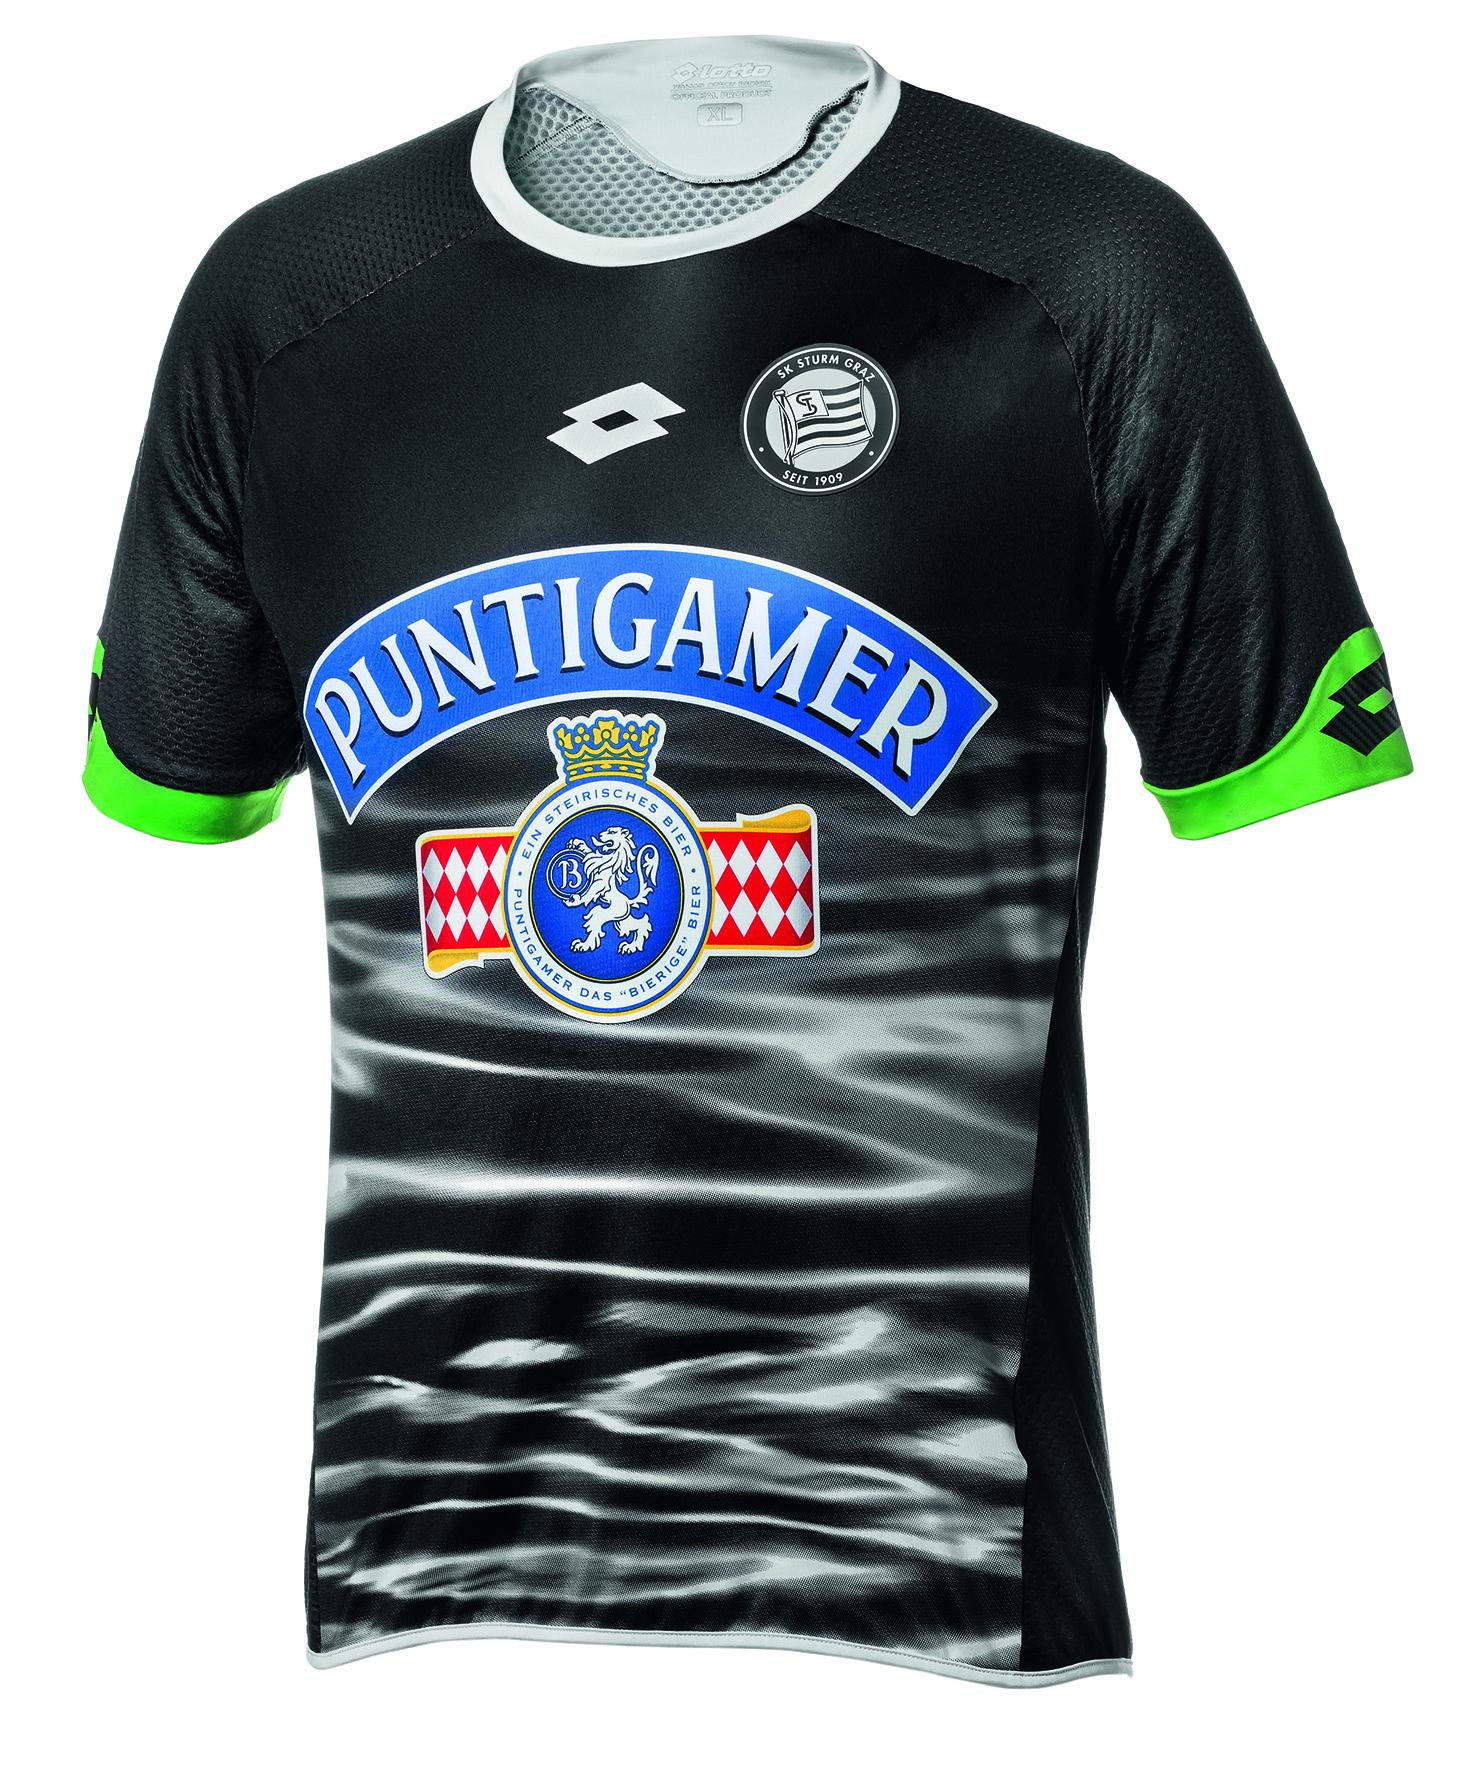 Sk Sturm Graz On Twitter Trikot Home 2015 16 Sturmgraz Lotto Http T Co U6ooytkuci